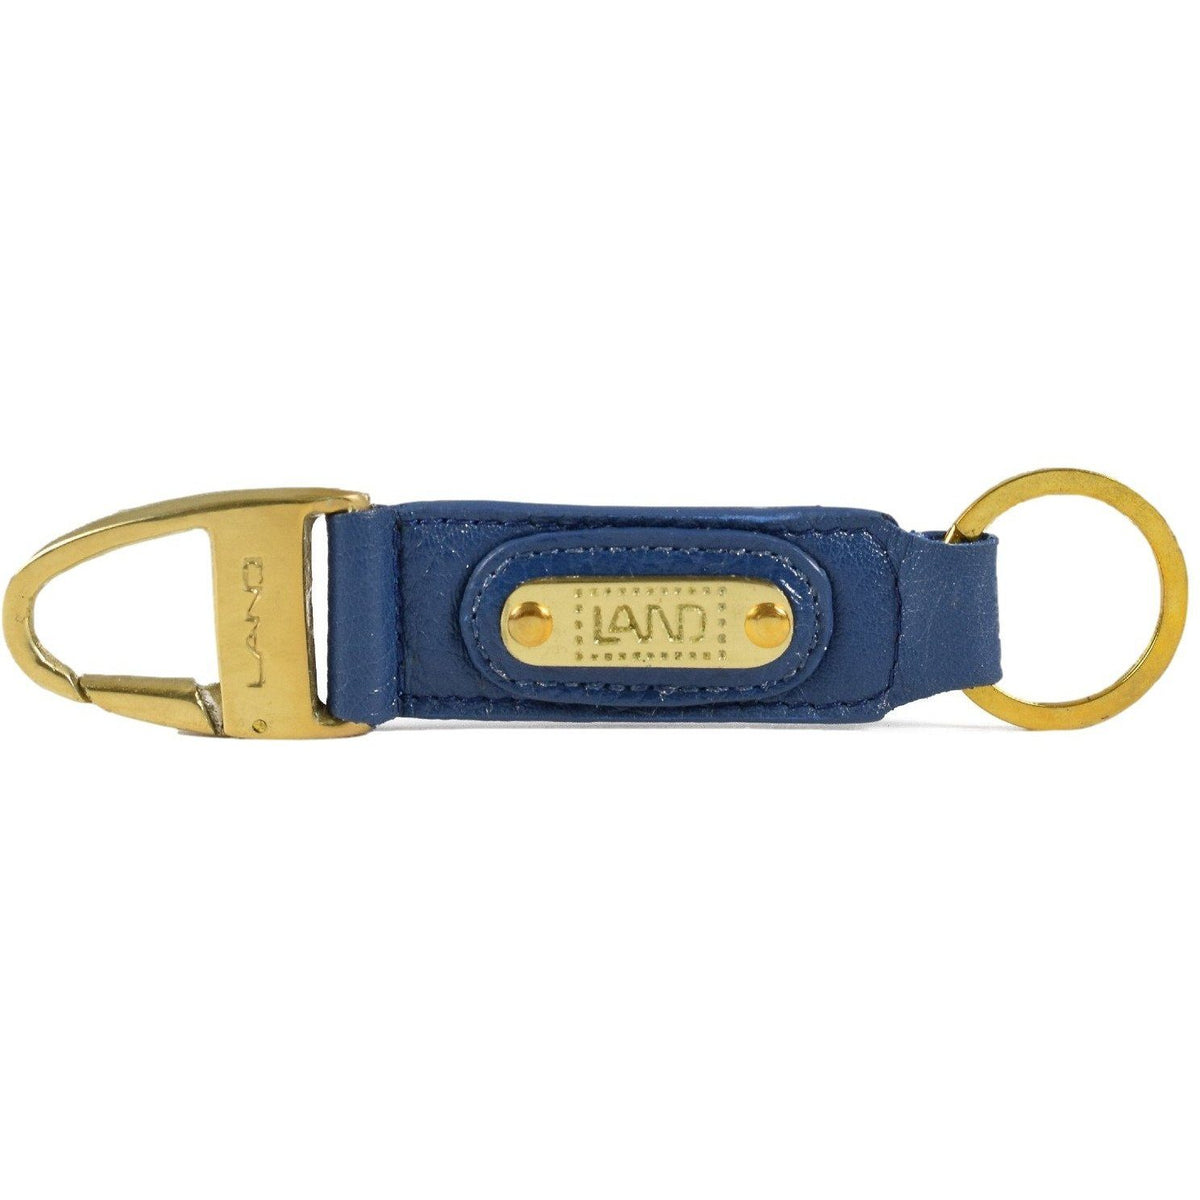 Cosmos Key Ring, Key Ring | LAND Leather